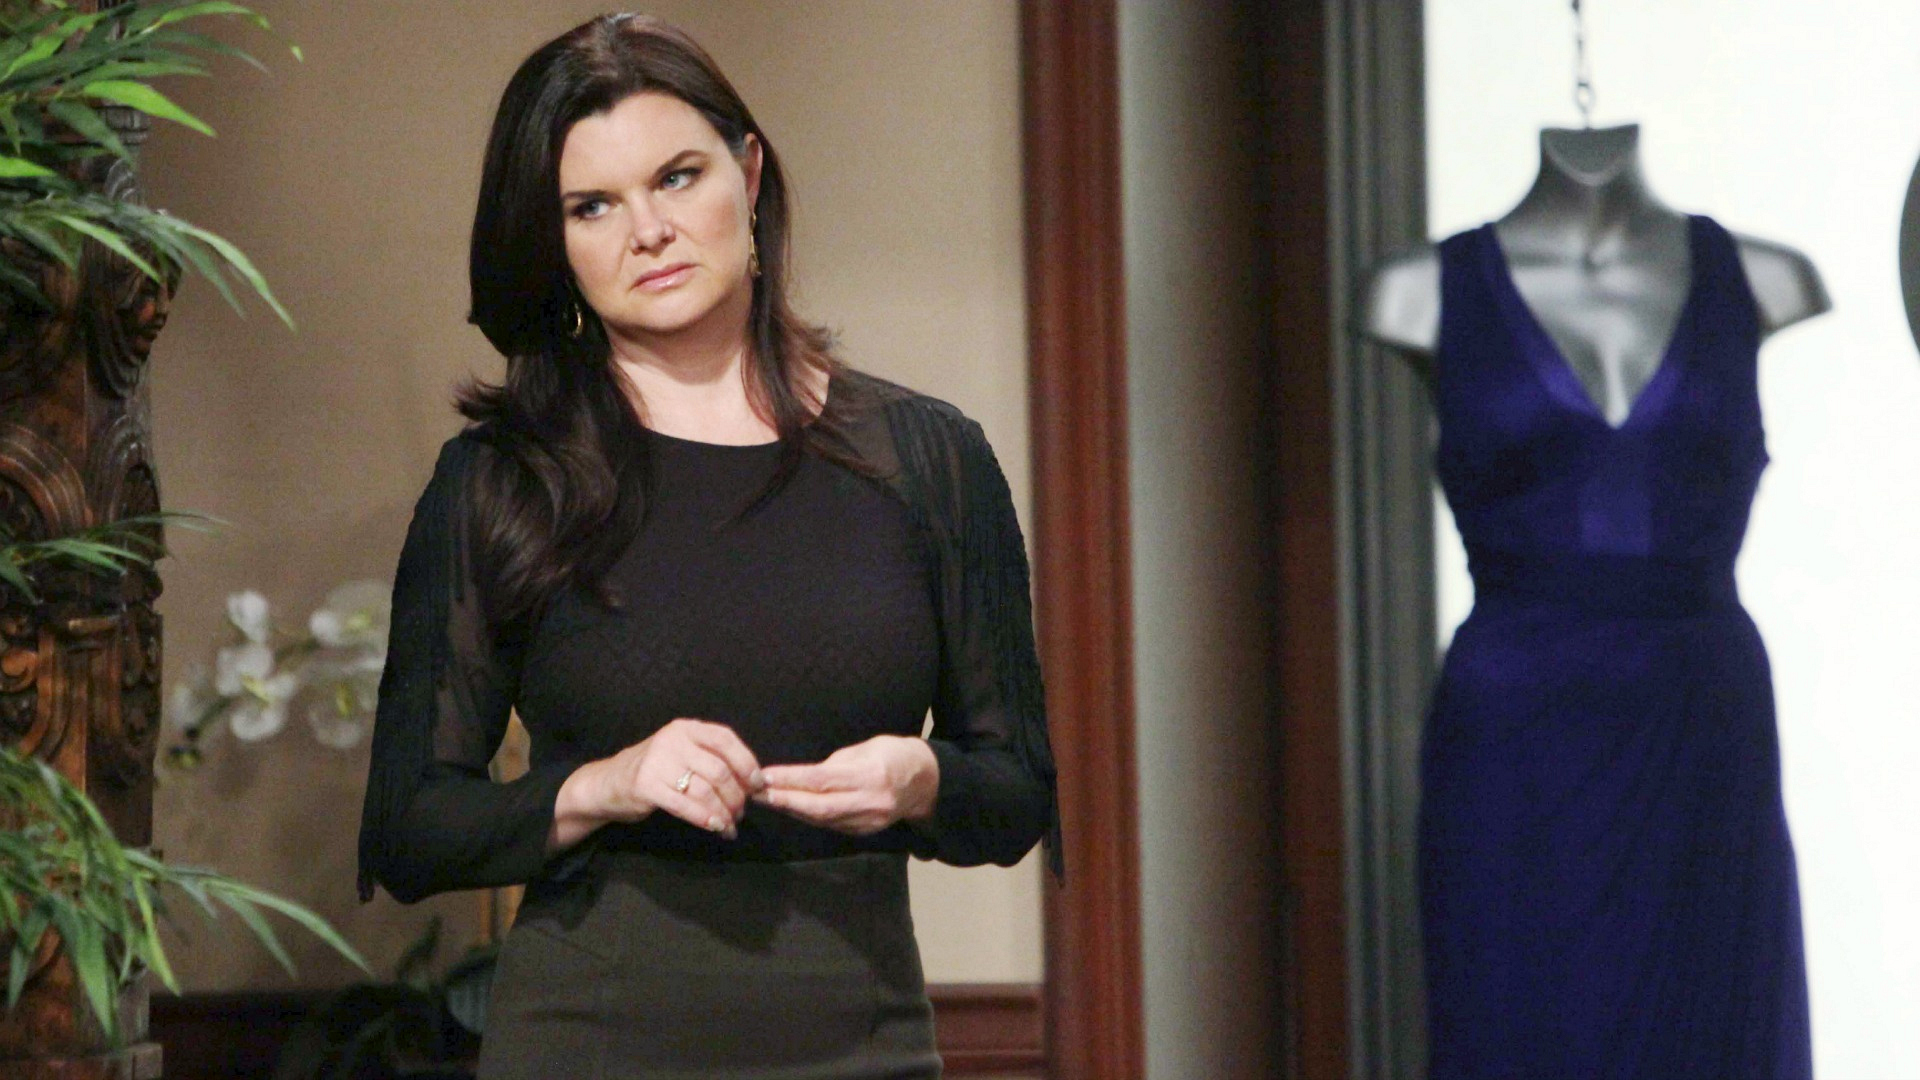 Katie attempts to shake off the uneasy feeling she got while watching Ridge and Quinn interact.